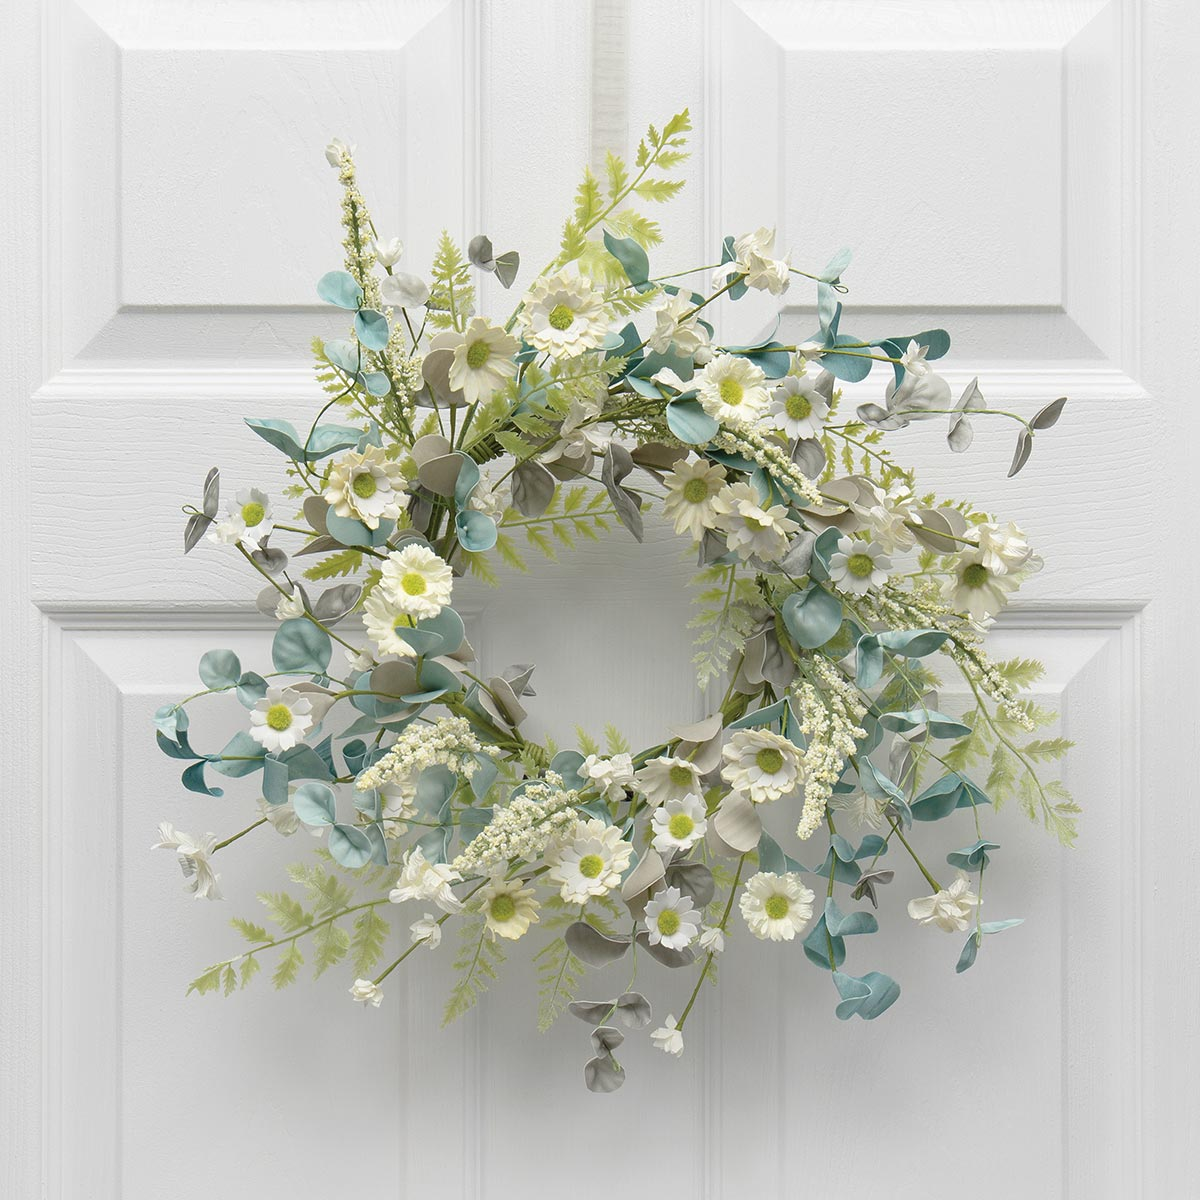 DAINTY DAISY MINI WREATH/CANDLE RING BLUE/WHITE 18""